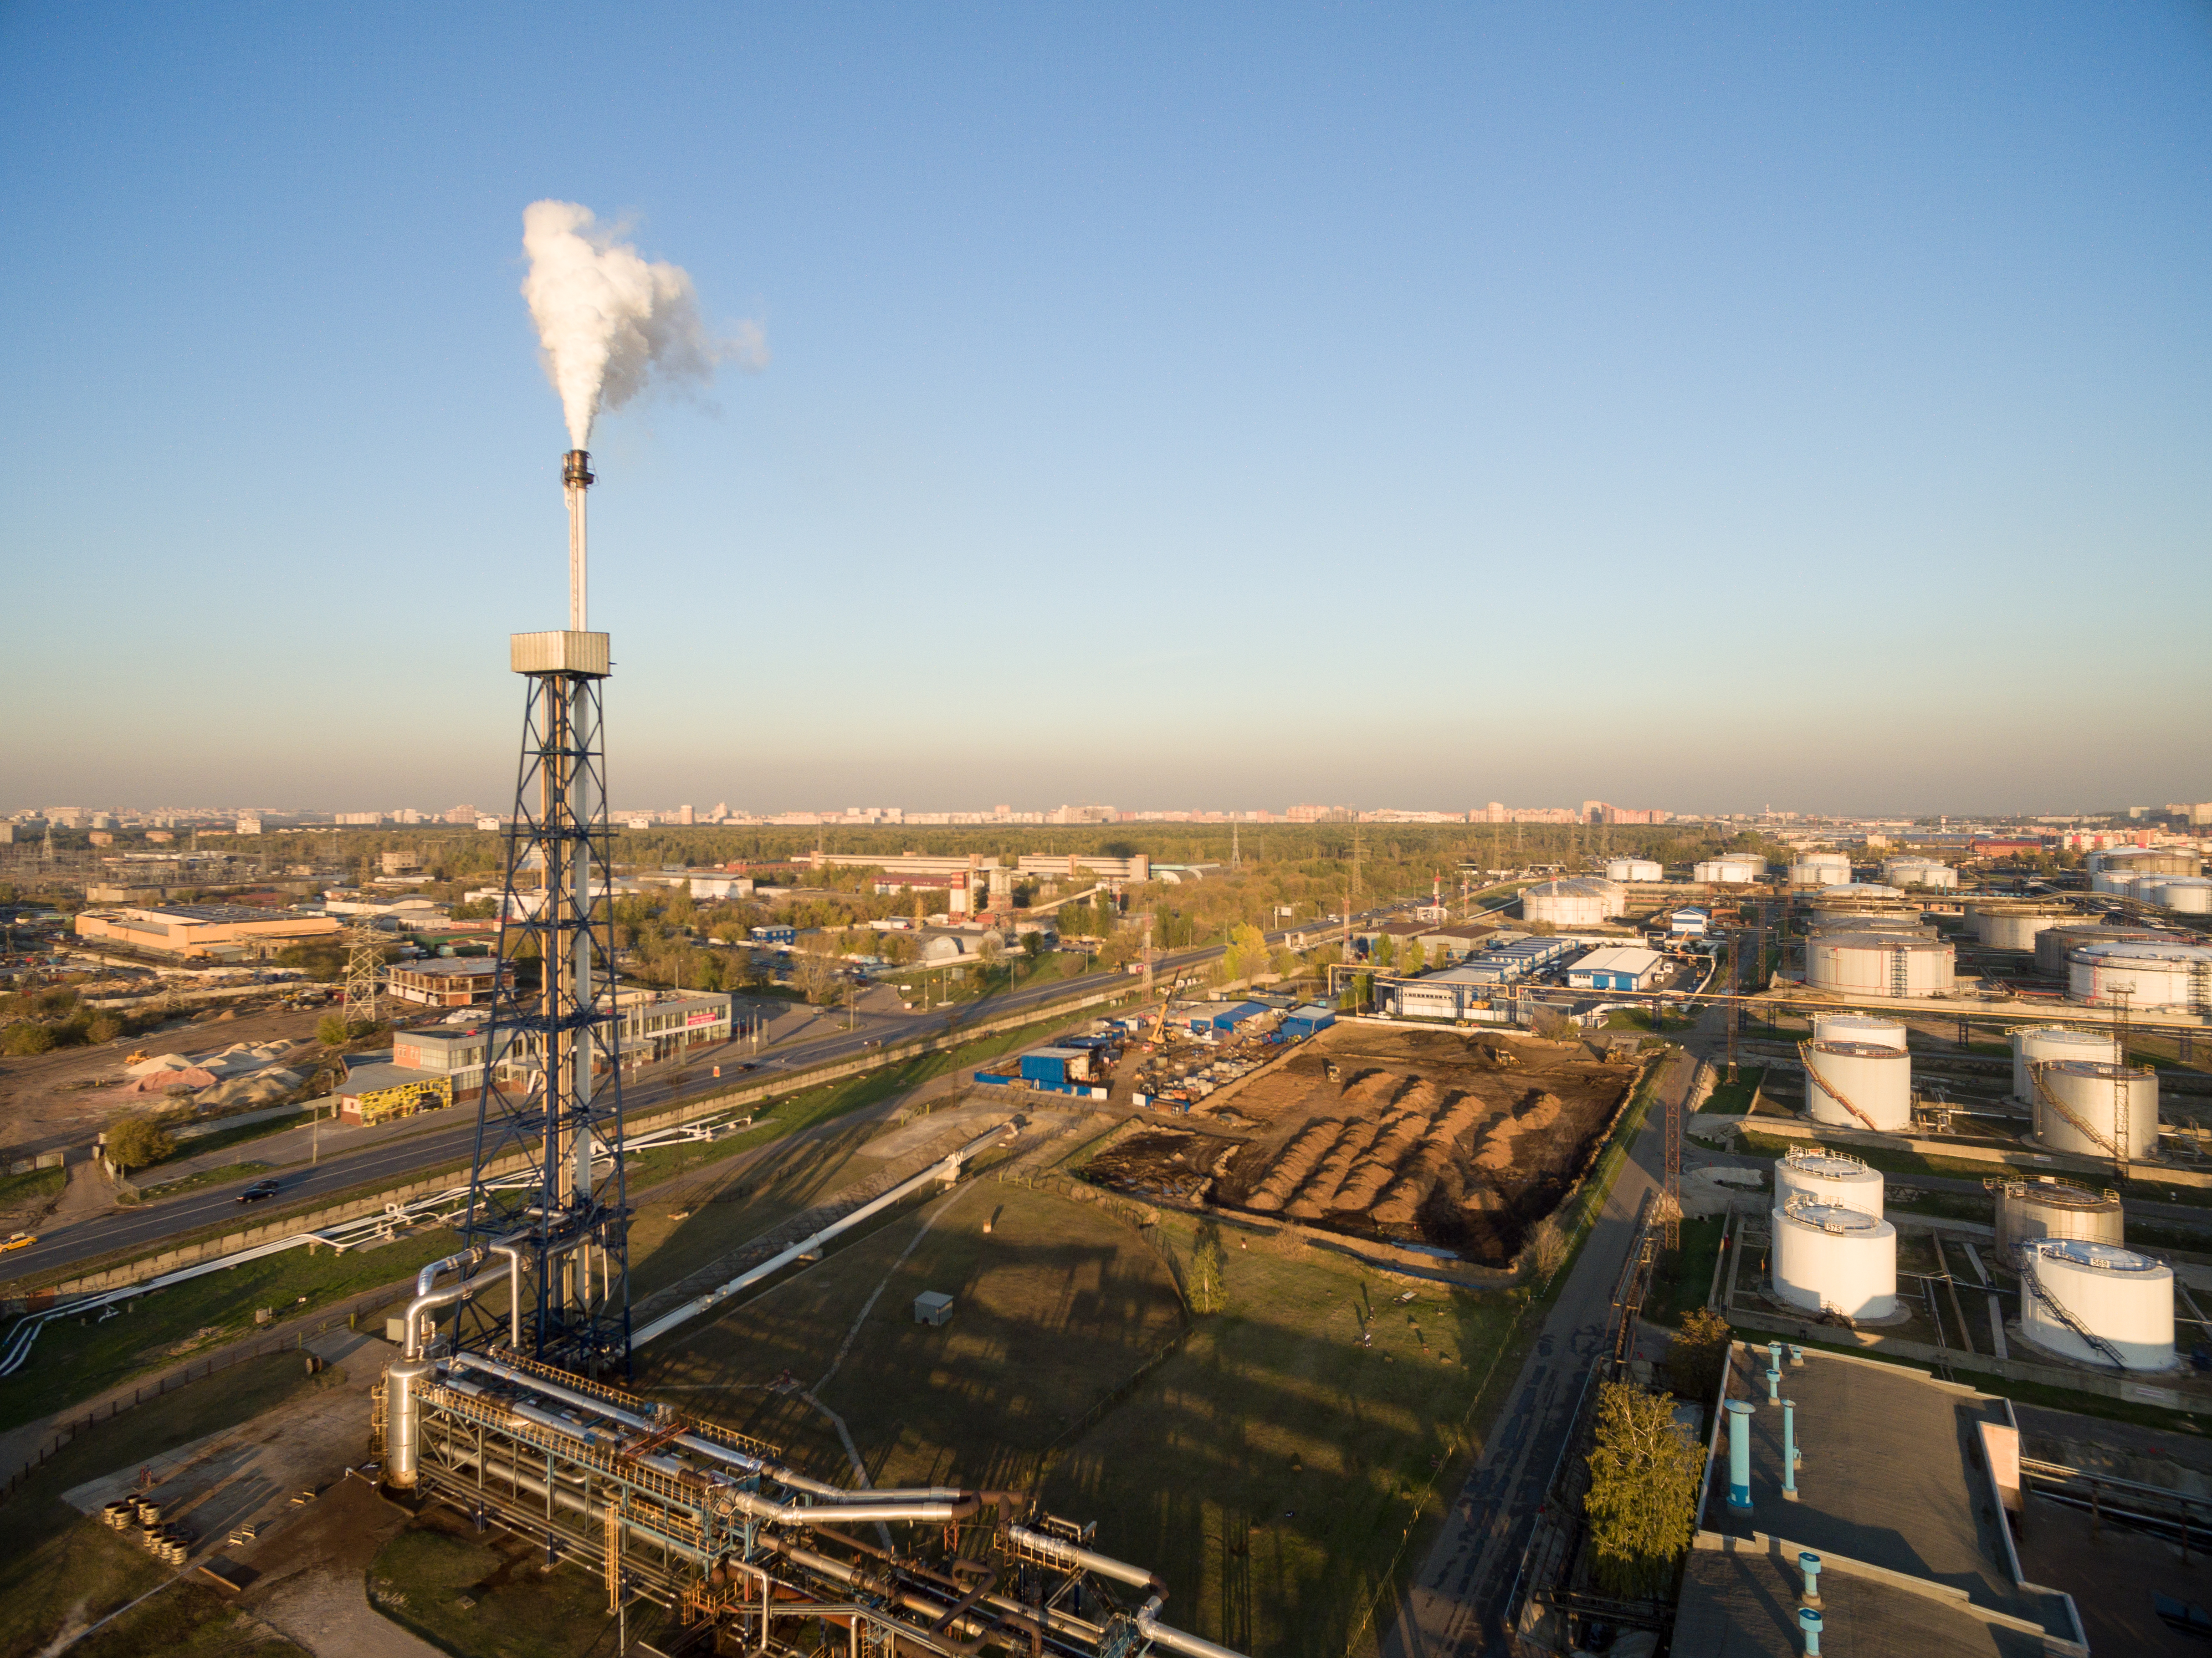 View of large oil refinery - petrochemical plant